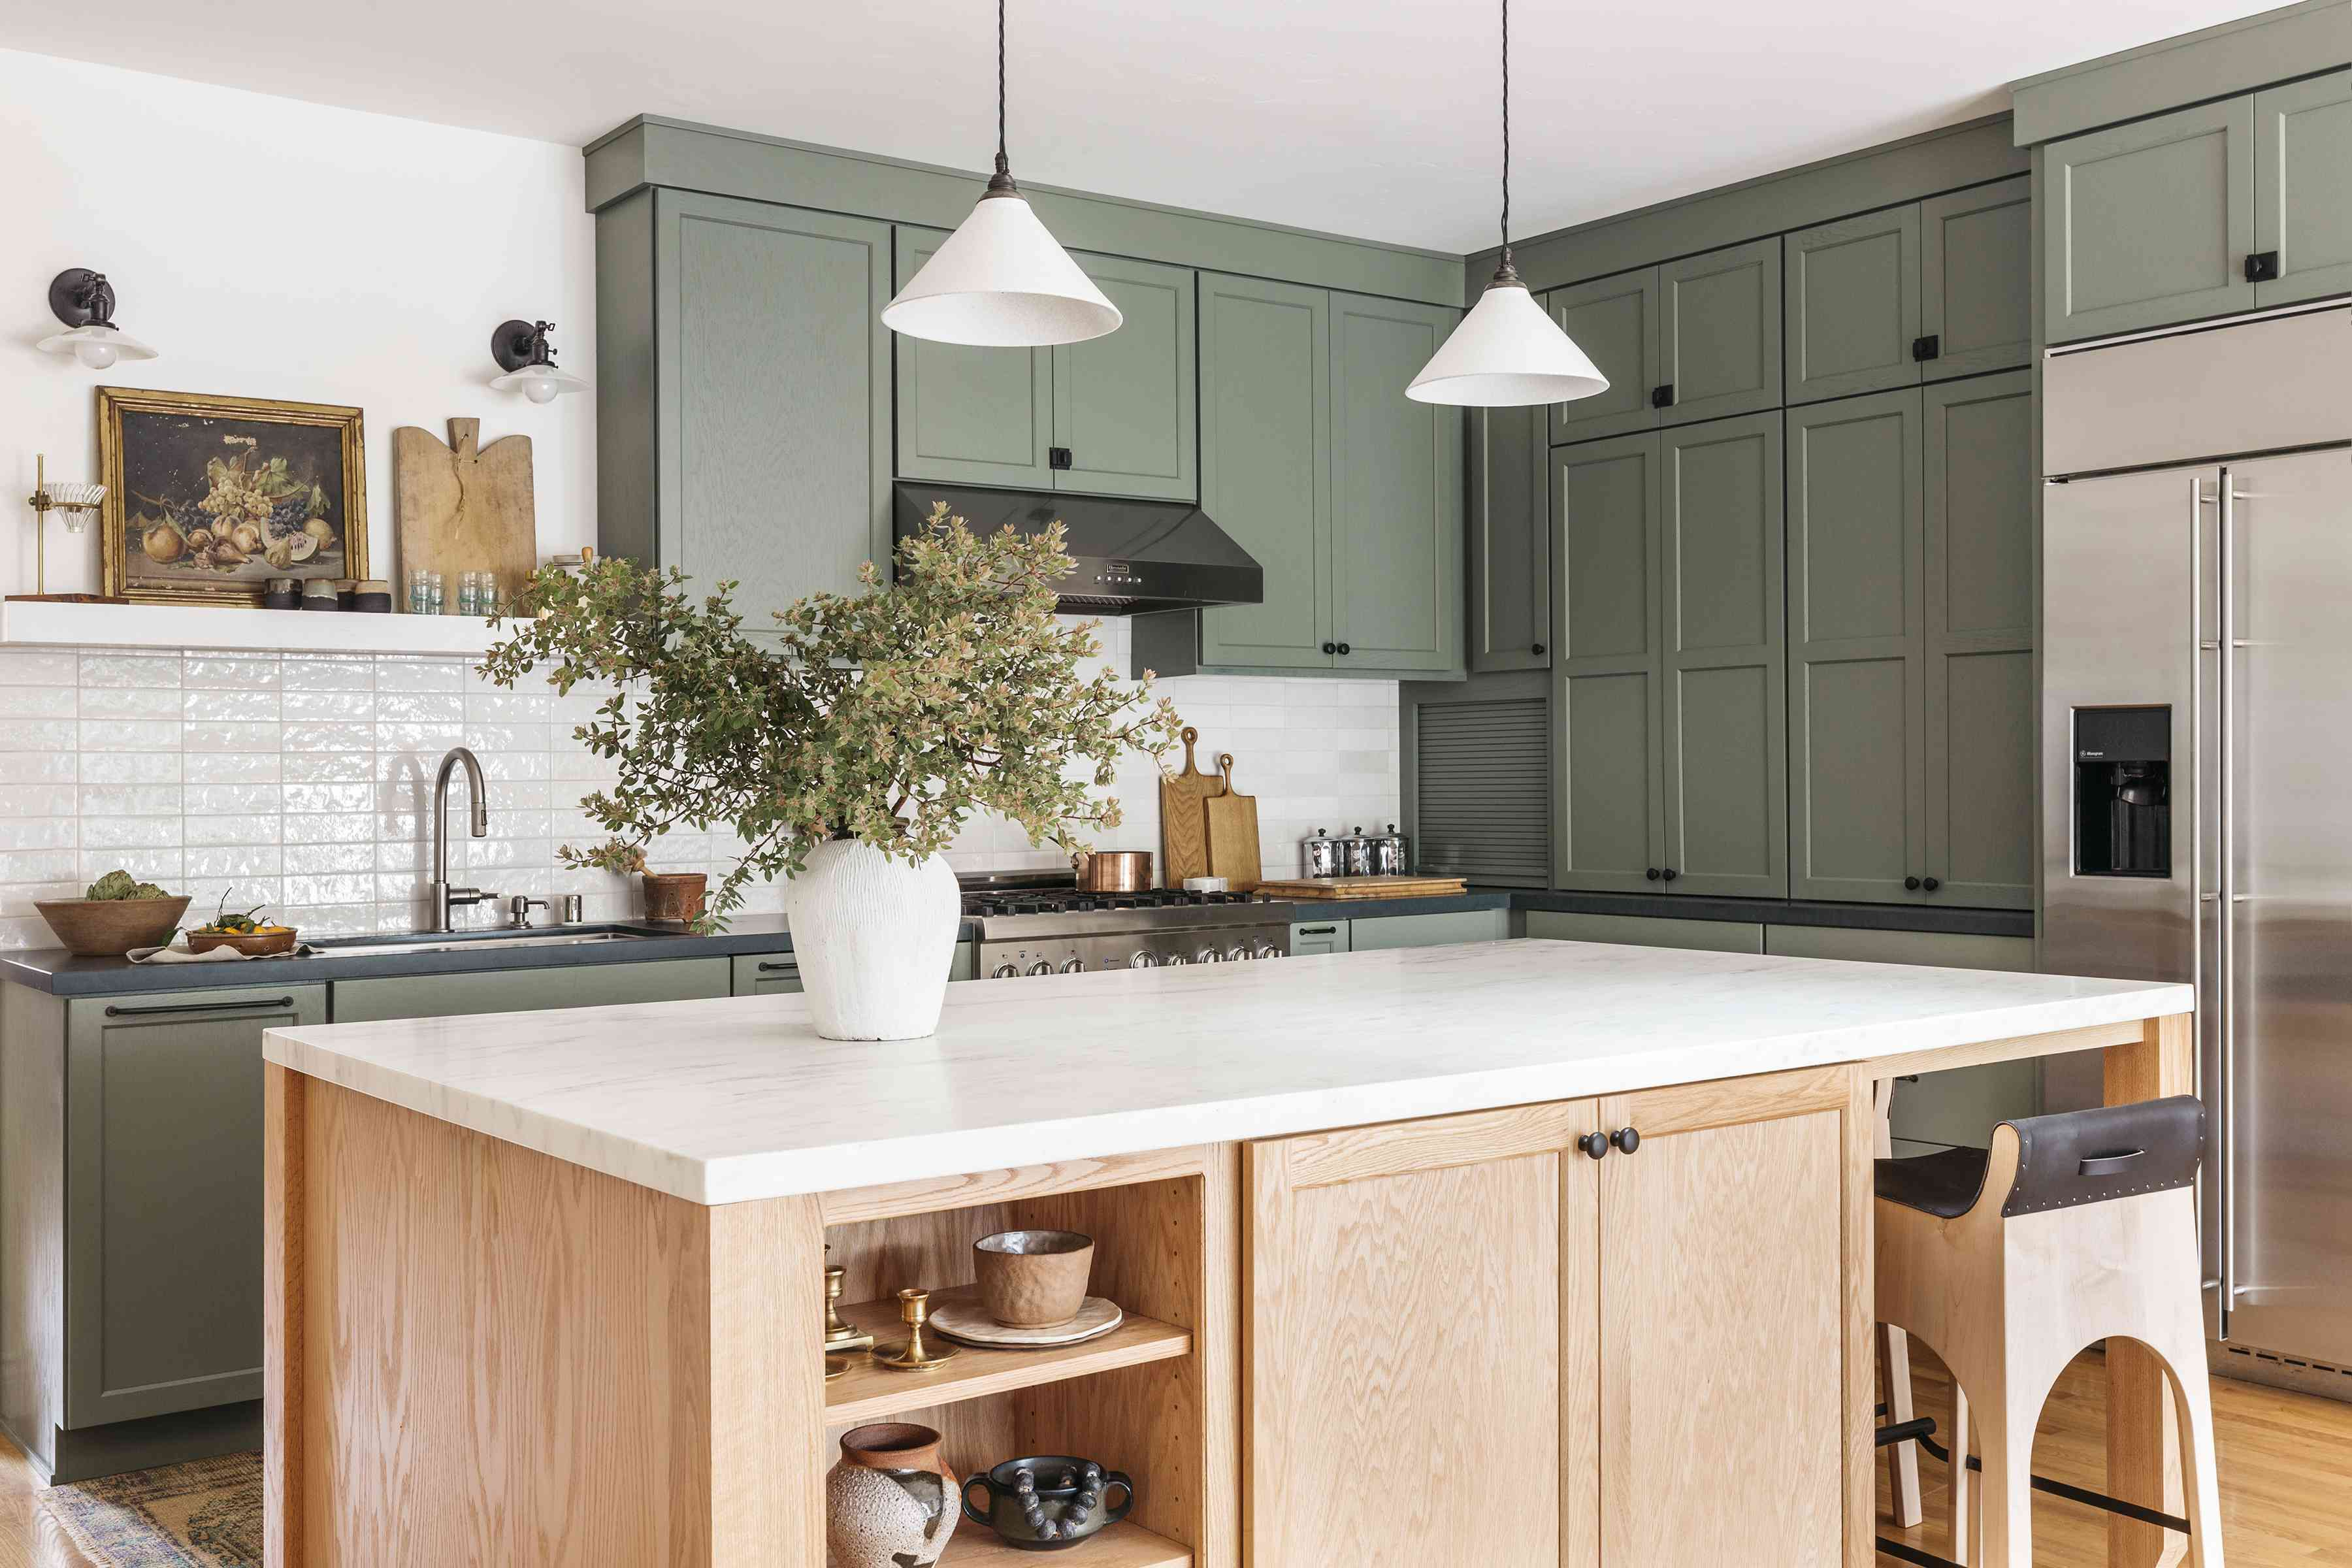 Brett Foken home tour - green kitchen with wood island with white marble countertop